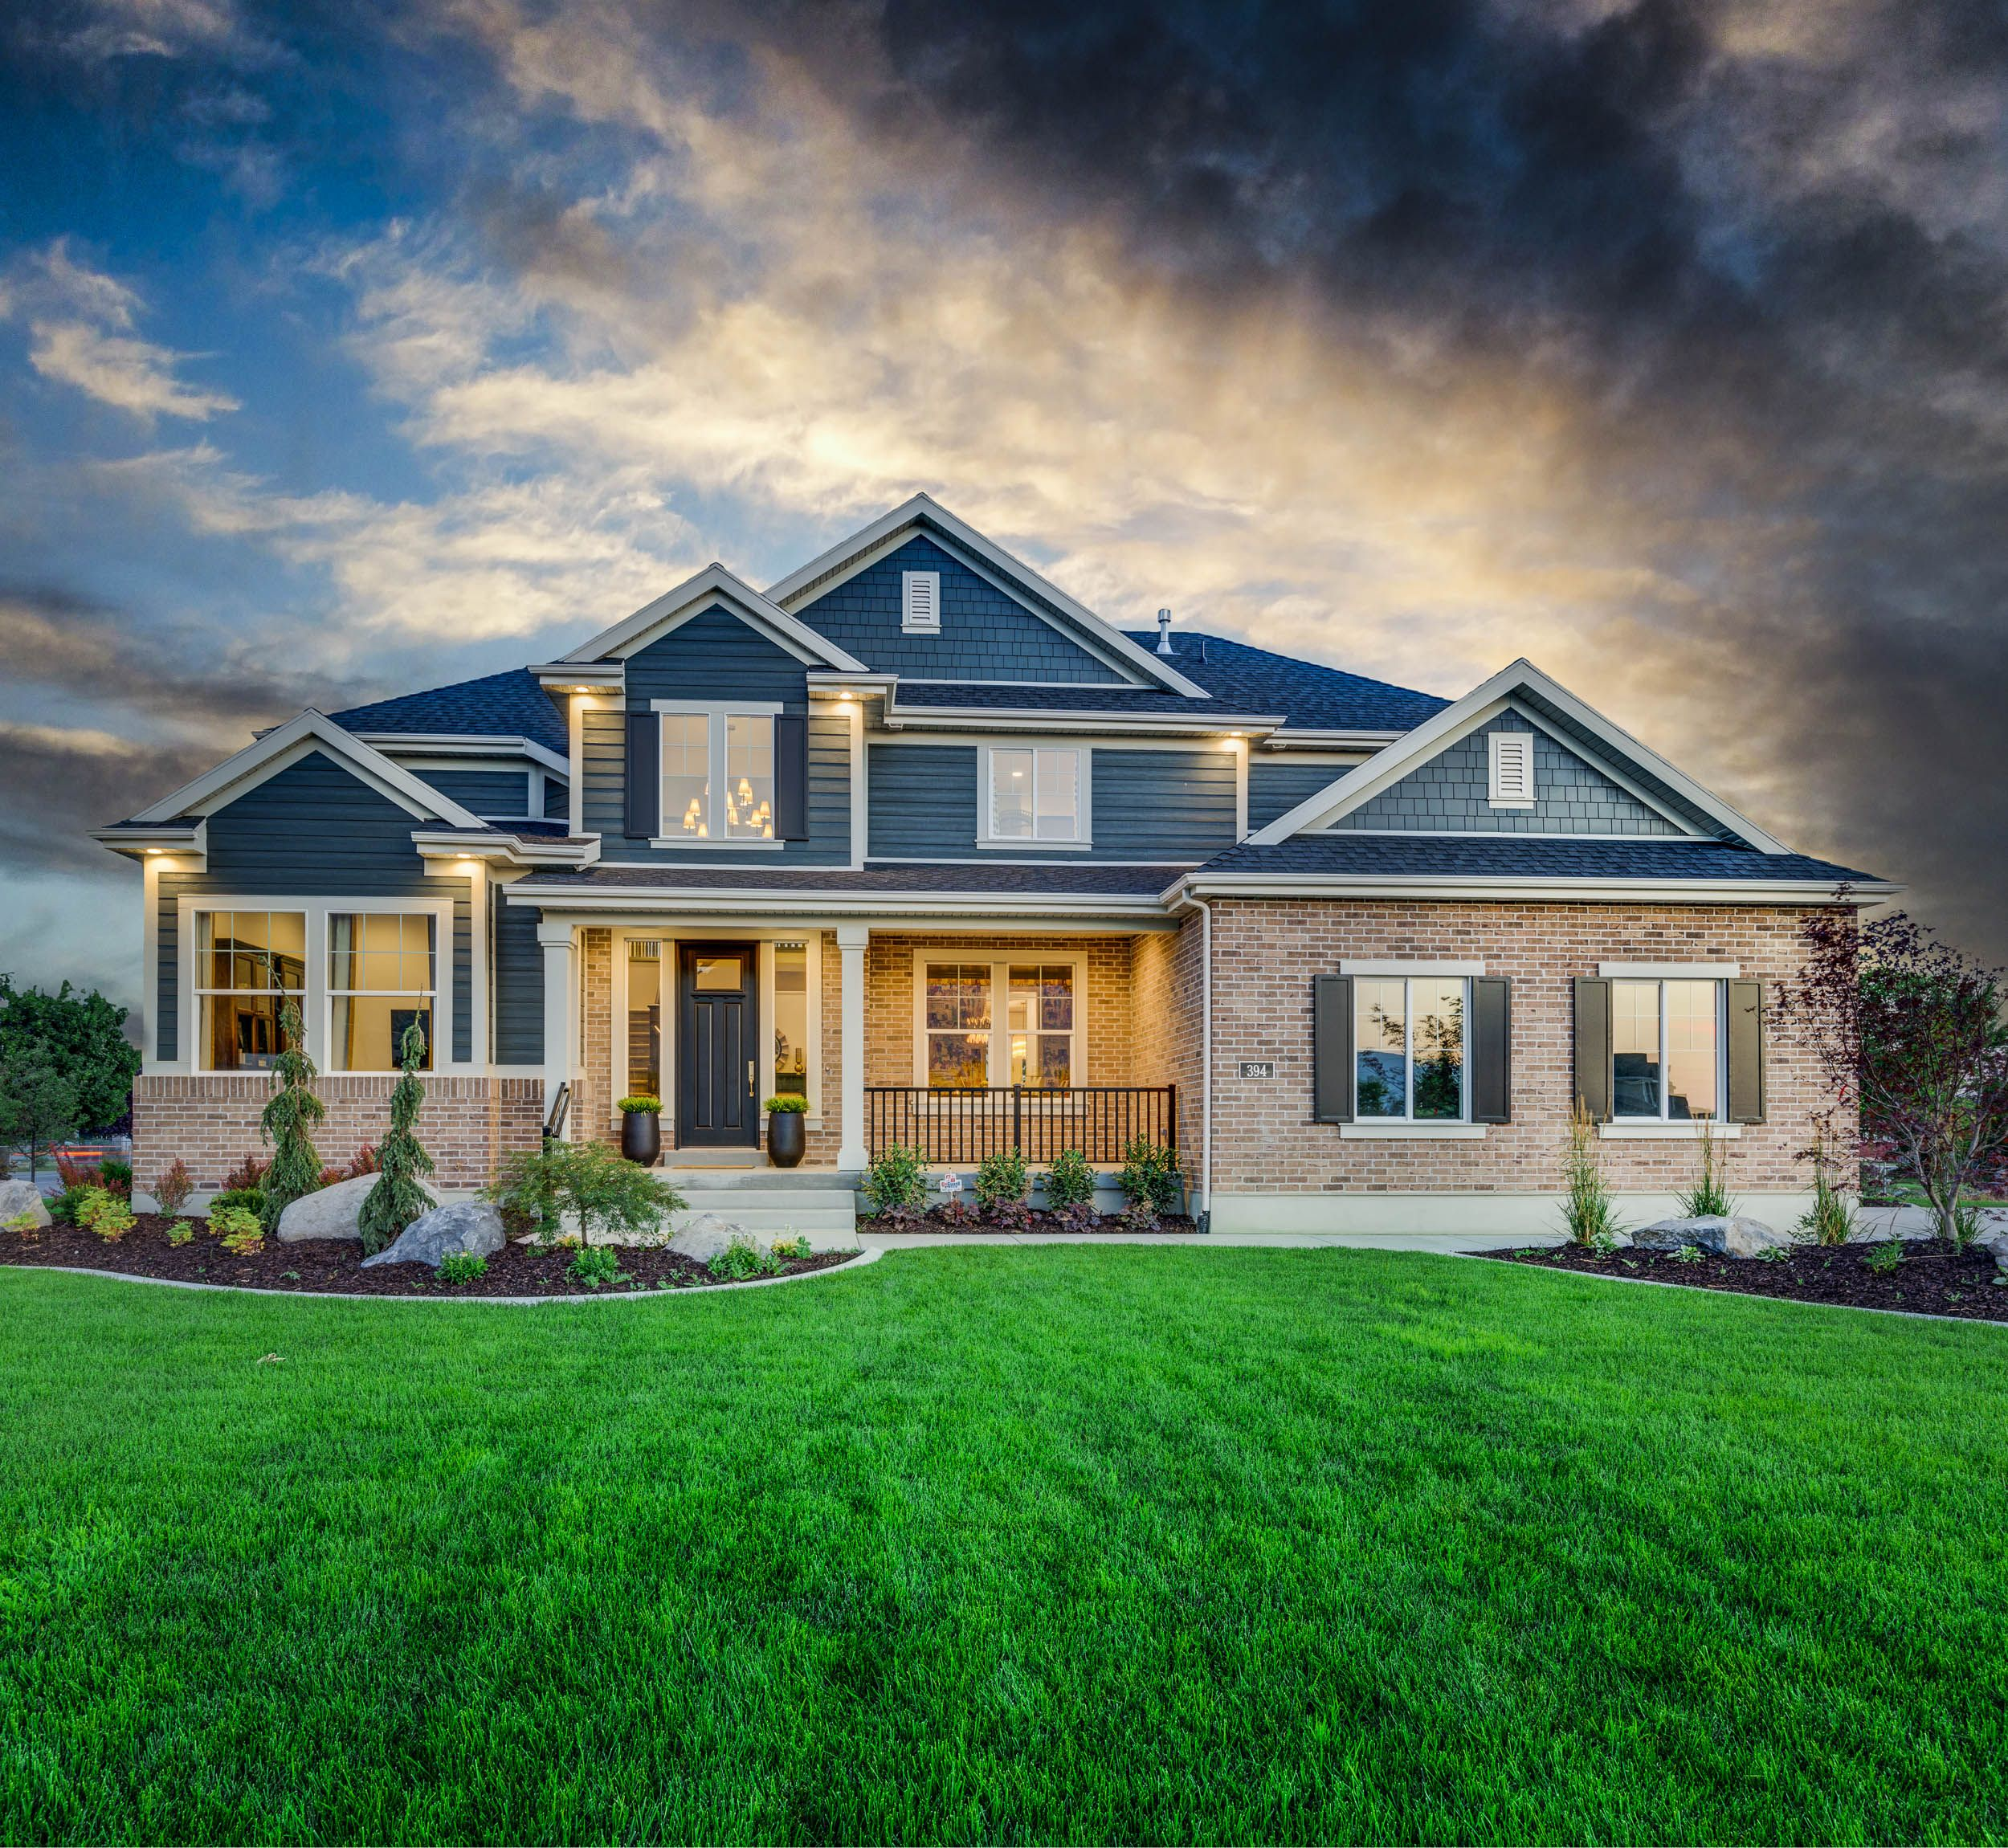 The Hanover Traditional Ivoryhomes Custom Built Homes Model New Home Designs